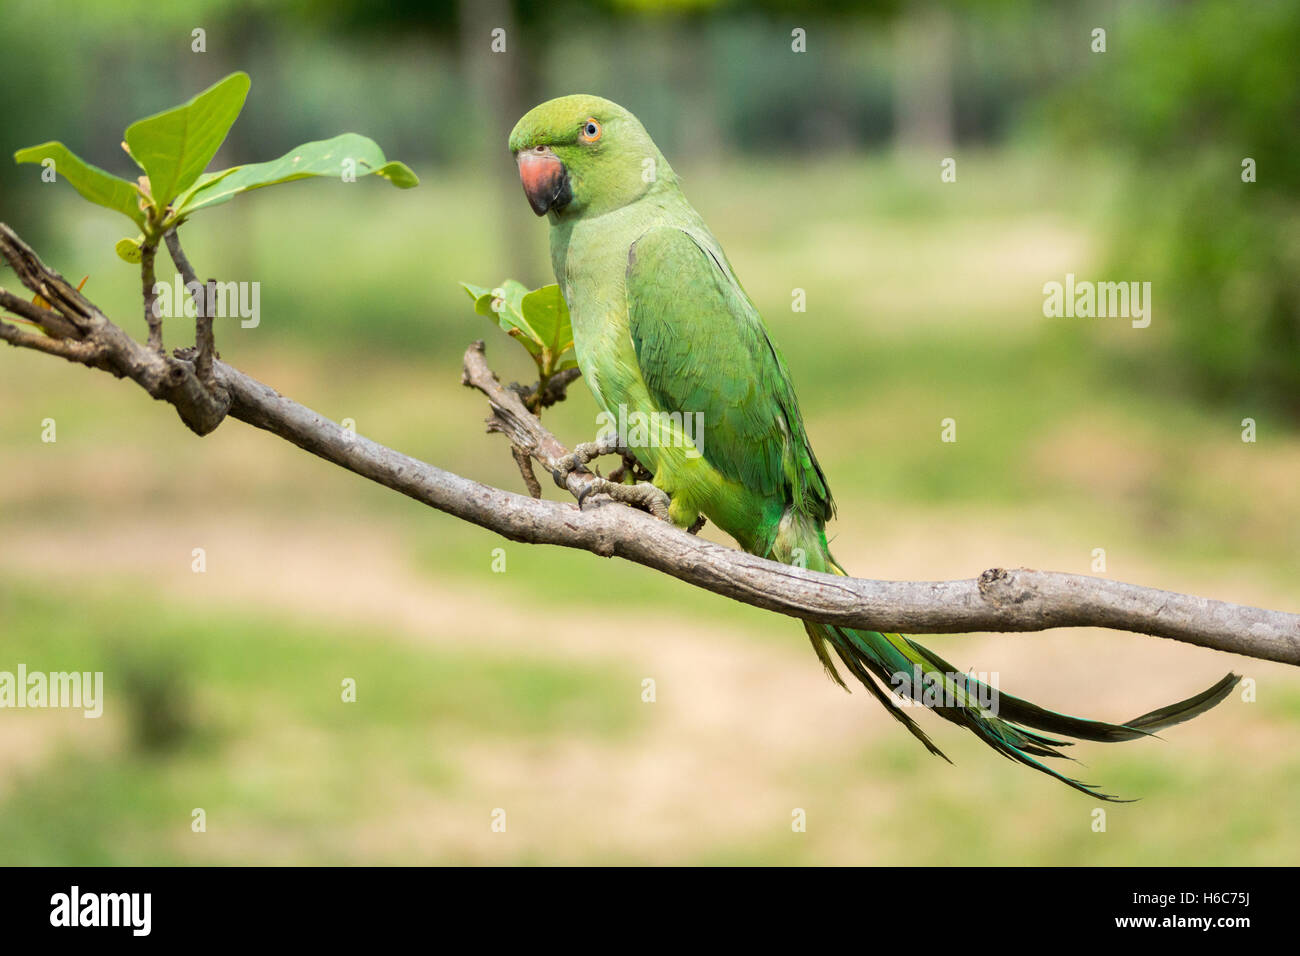 Green fortune telling parrot on branch of tree. - Stock Image